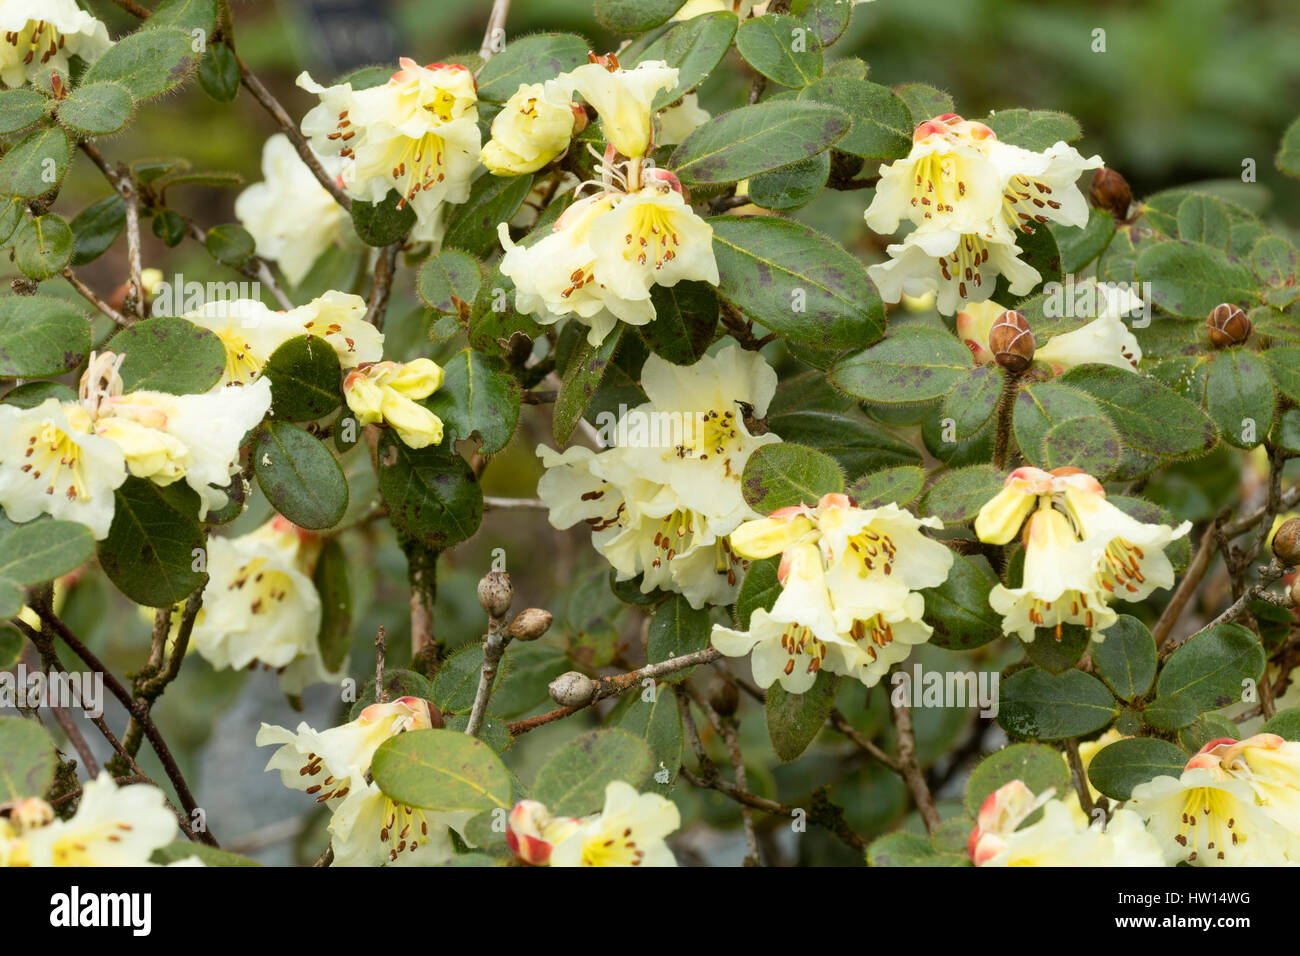 Pale Yellow Flowers Of The Early Spring Flowering Evergreen Shrub